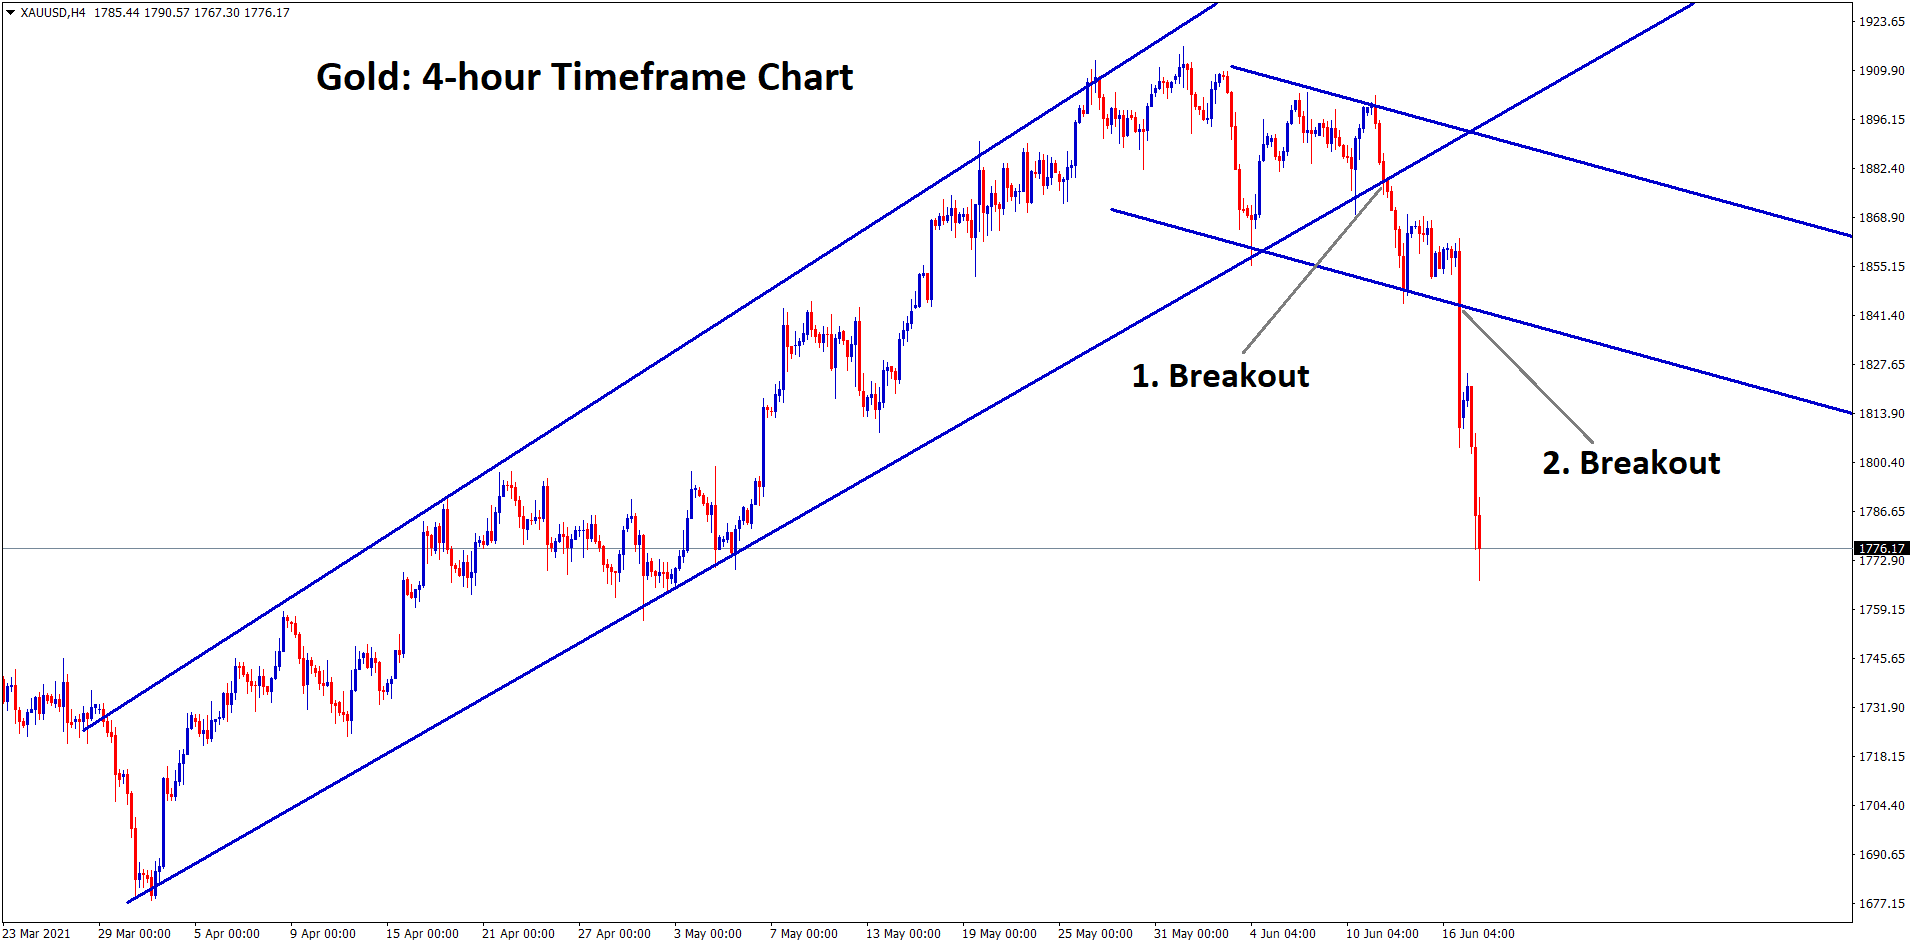 Gold has broken the bottom level of the major uptrend line first next the gold price has broken the bottom level of the descending channel consolidation range